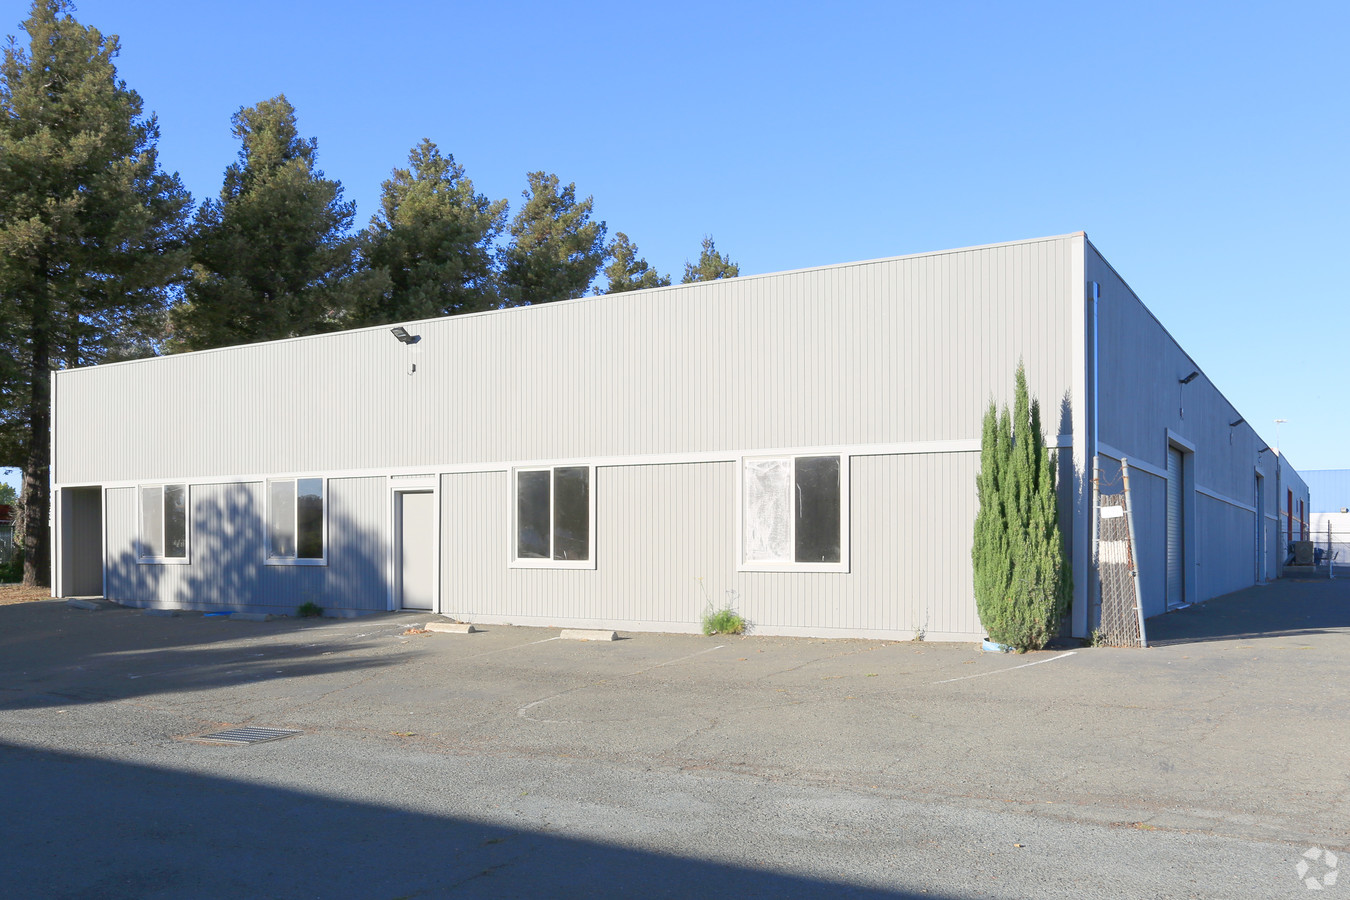 3880 & 3890 Industrial Way   Zoned Light Industrial  8,460 SF, Min. Divisible 3900 SF  Contact: Kennedy Wilson Real Estate, Eric Rehn 925.784.3449